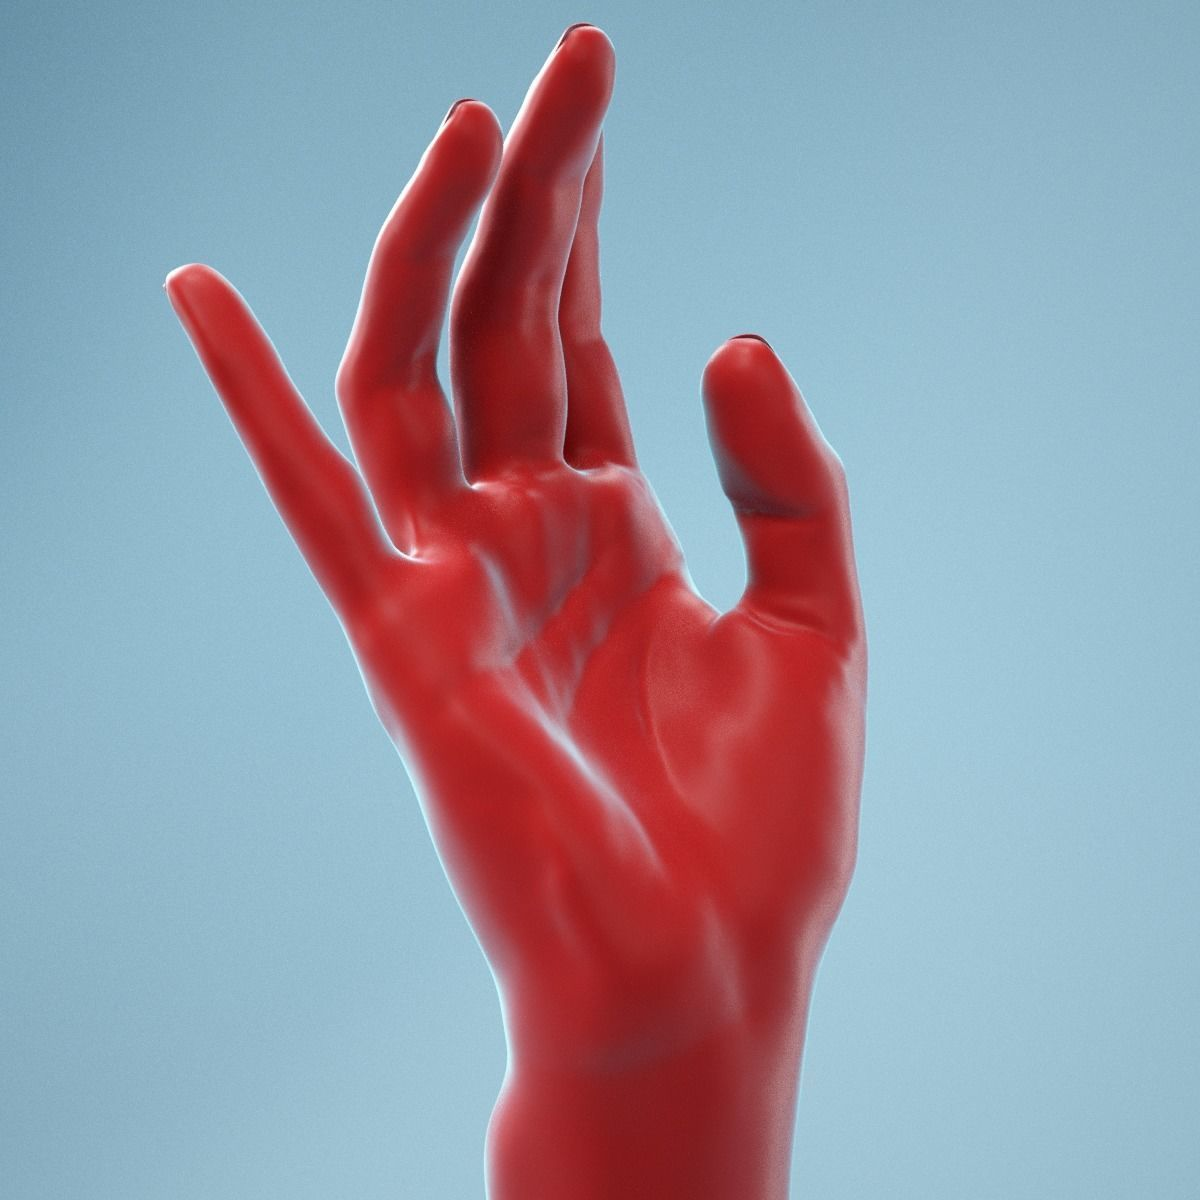 Elegant Relaxed Realistic Hand Model 01